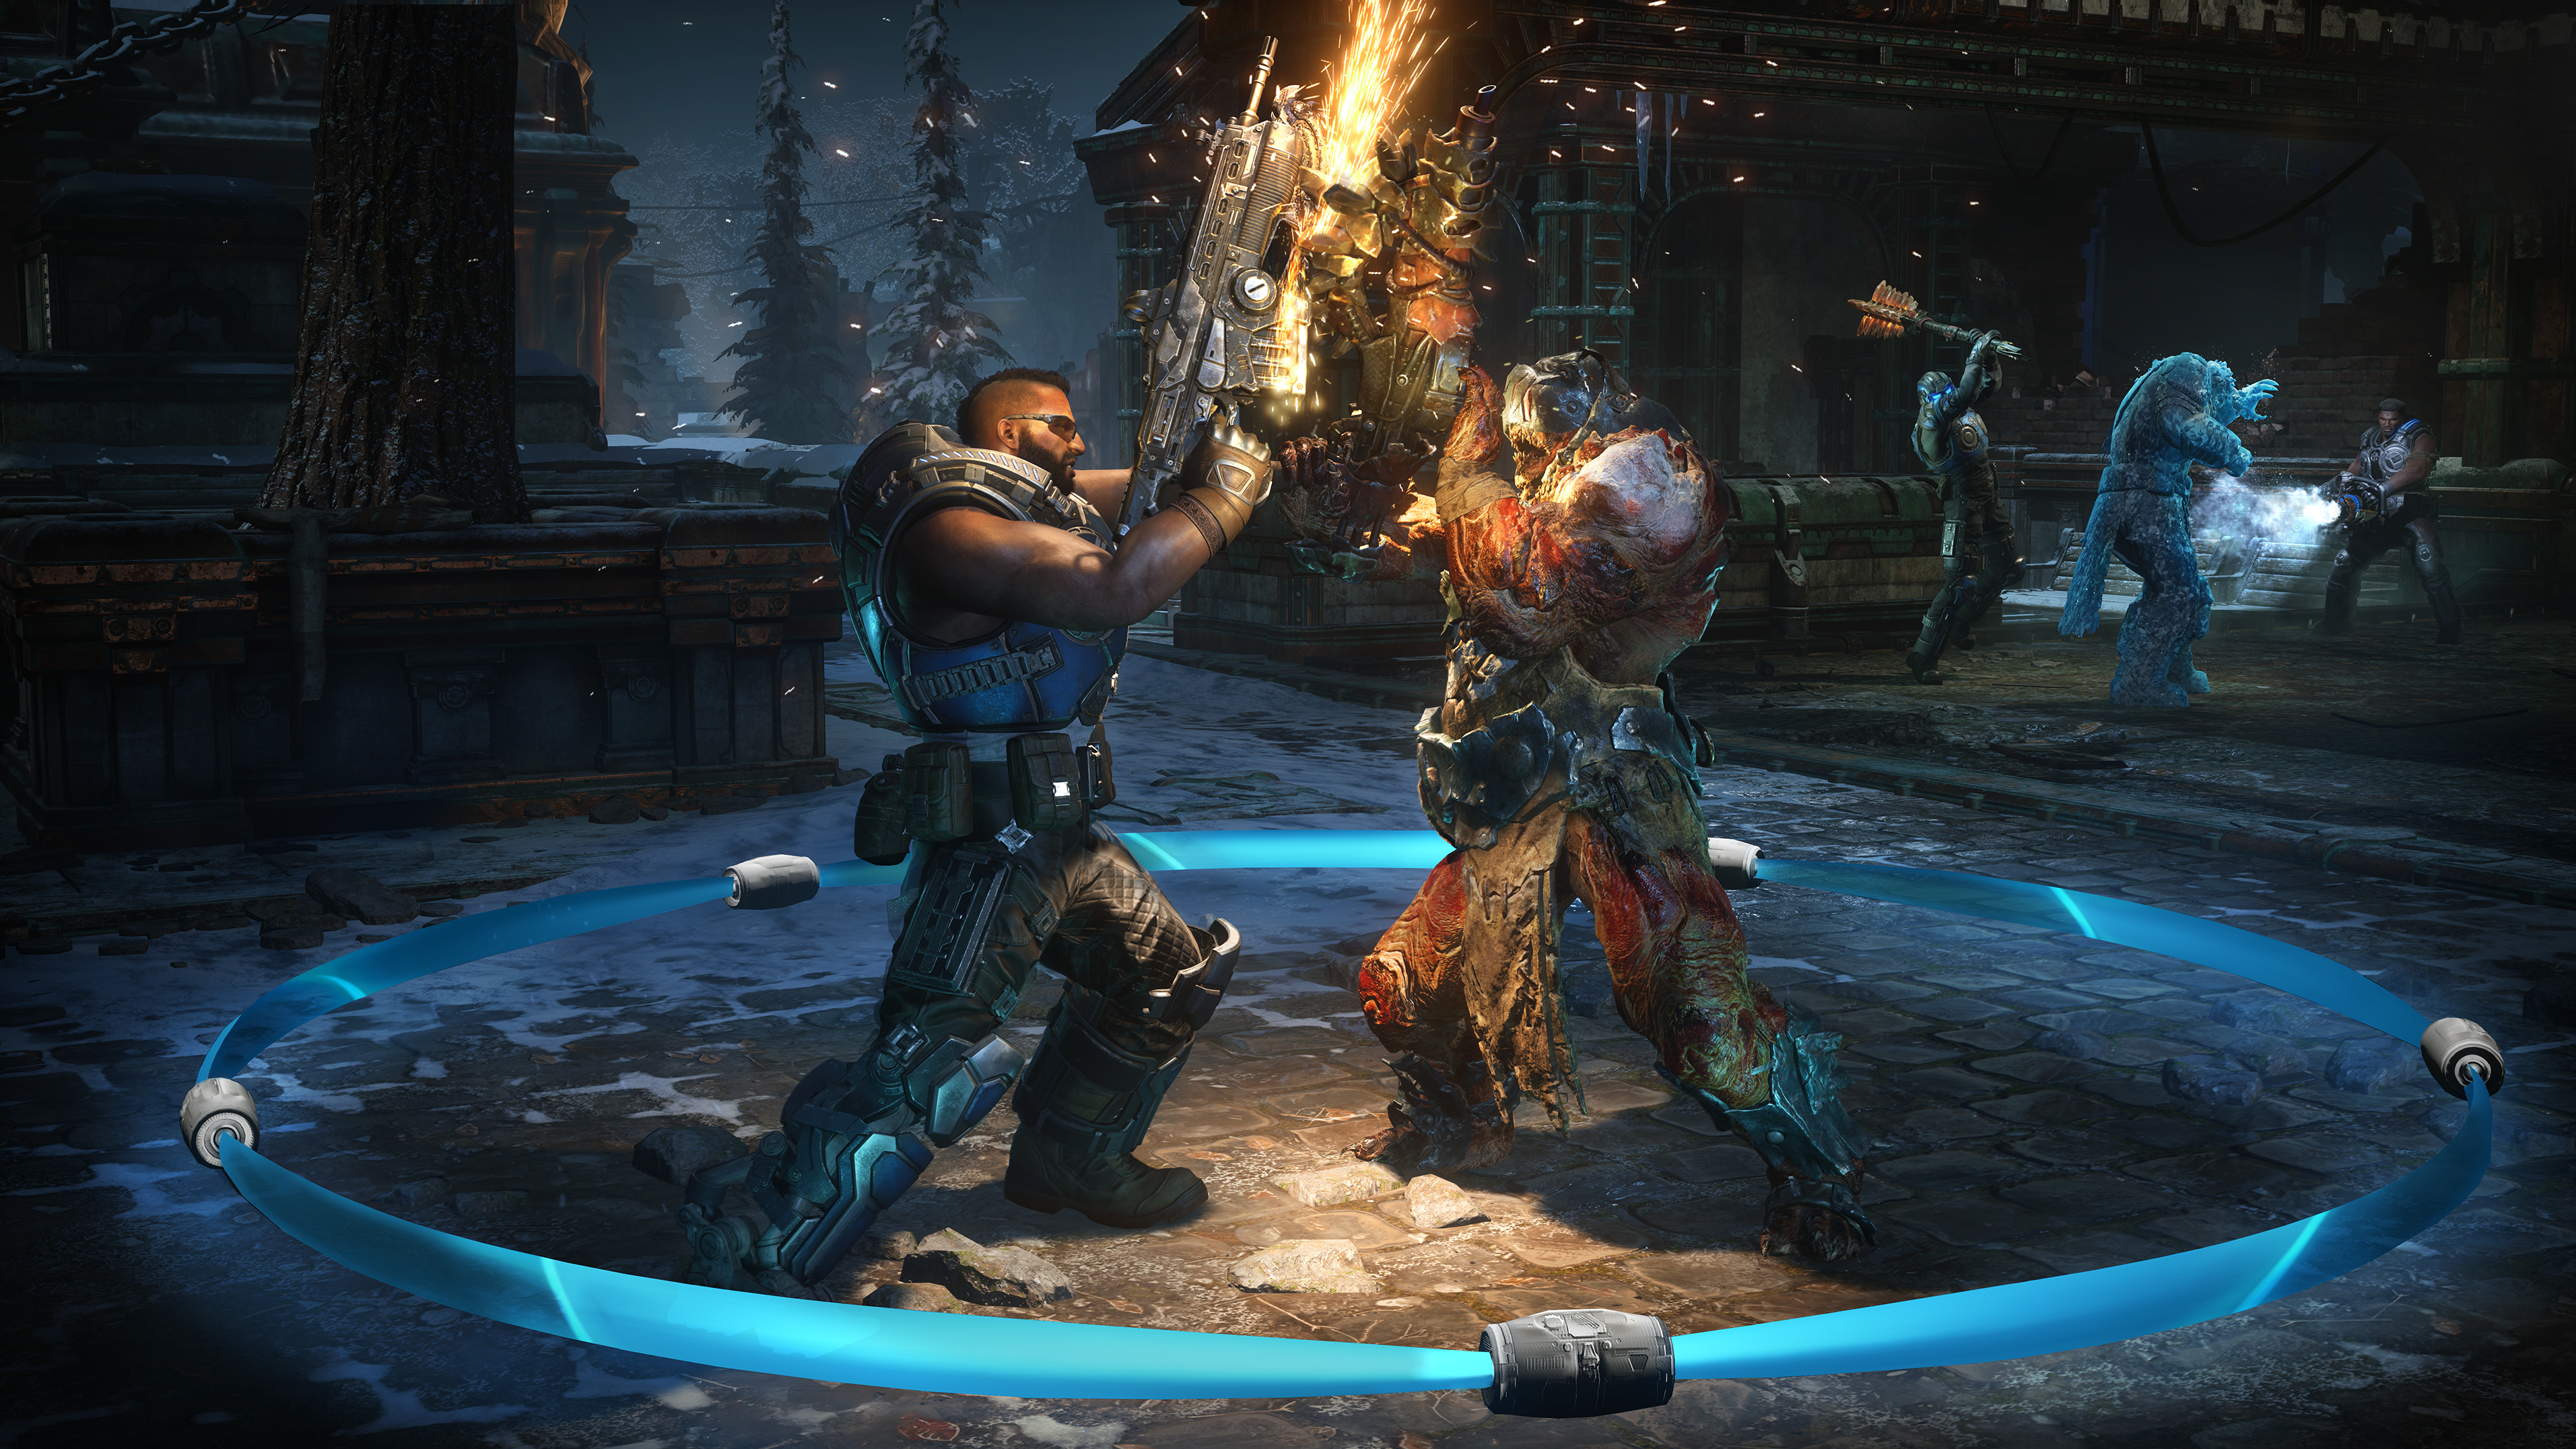 vqnRhNgrSPD6drgM45fk8B - Gears 5 is the 'largest Gears to date', according to The Coalition